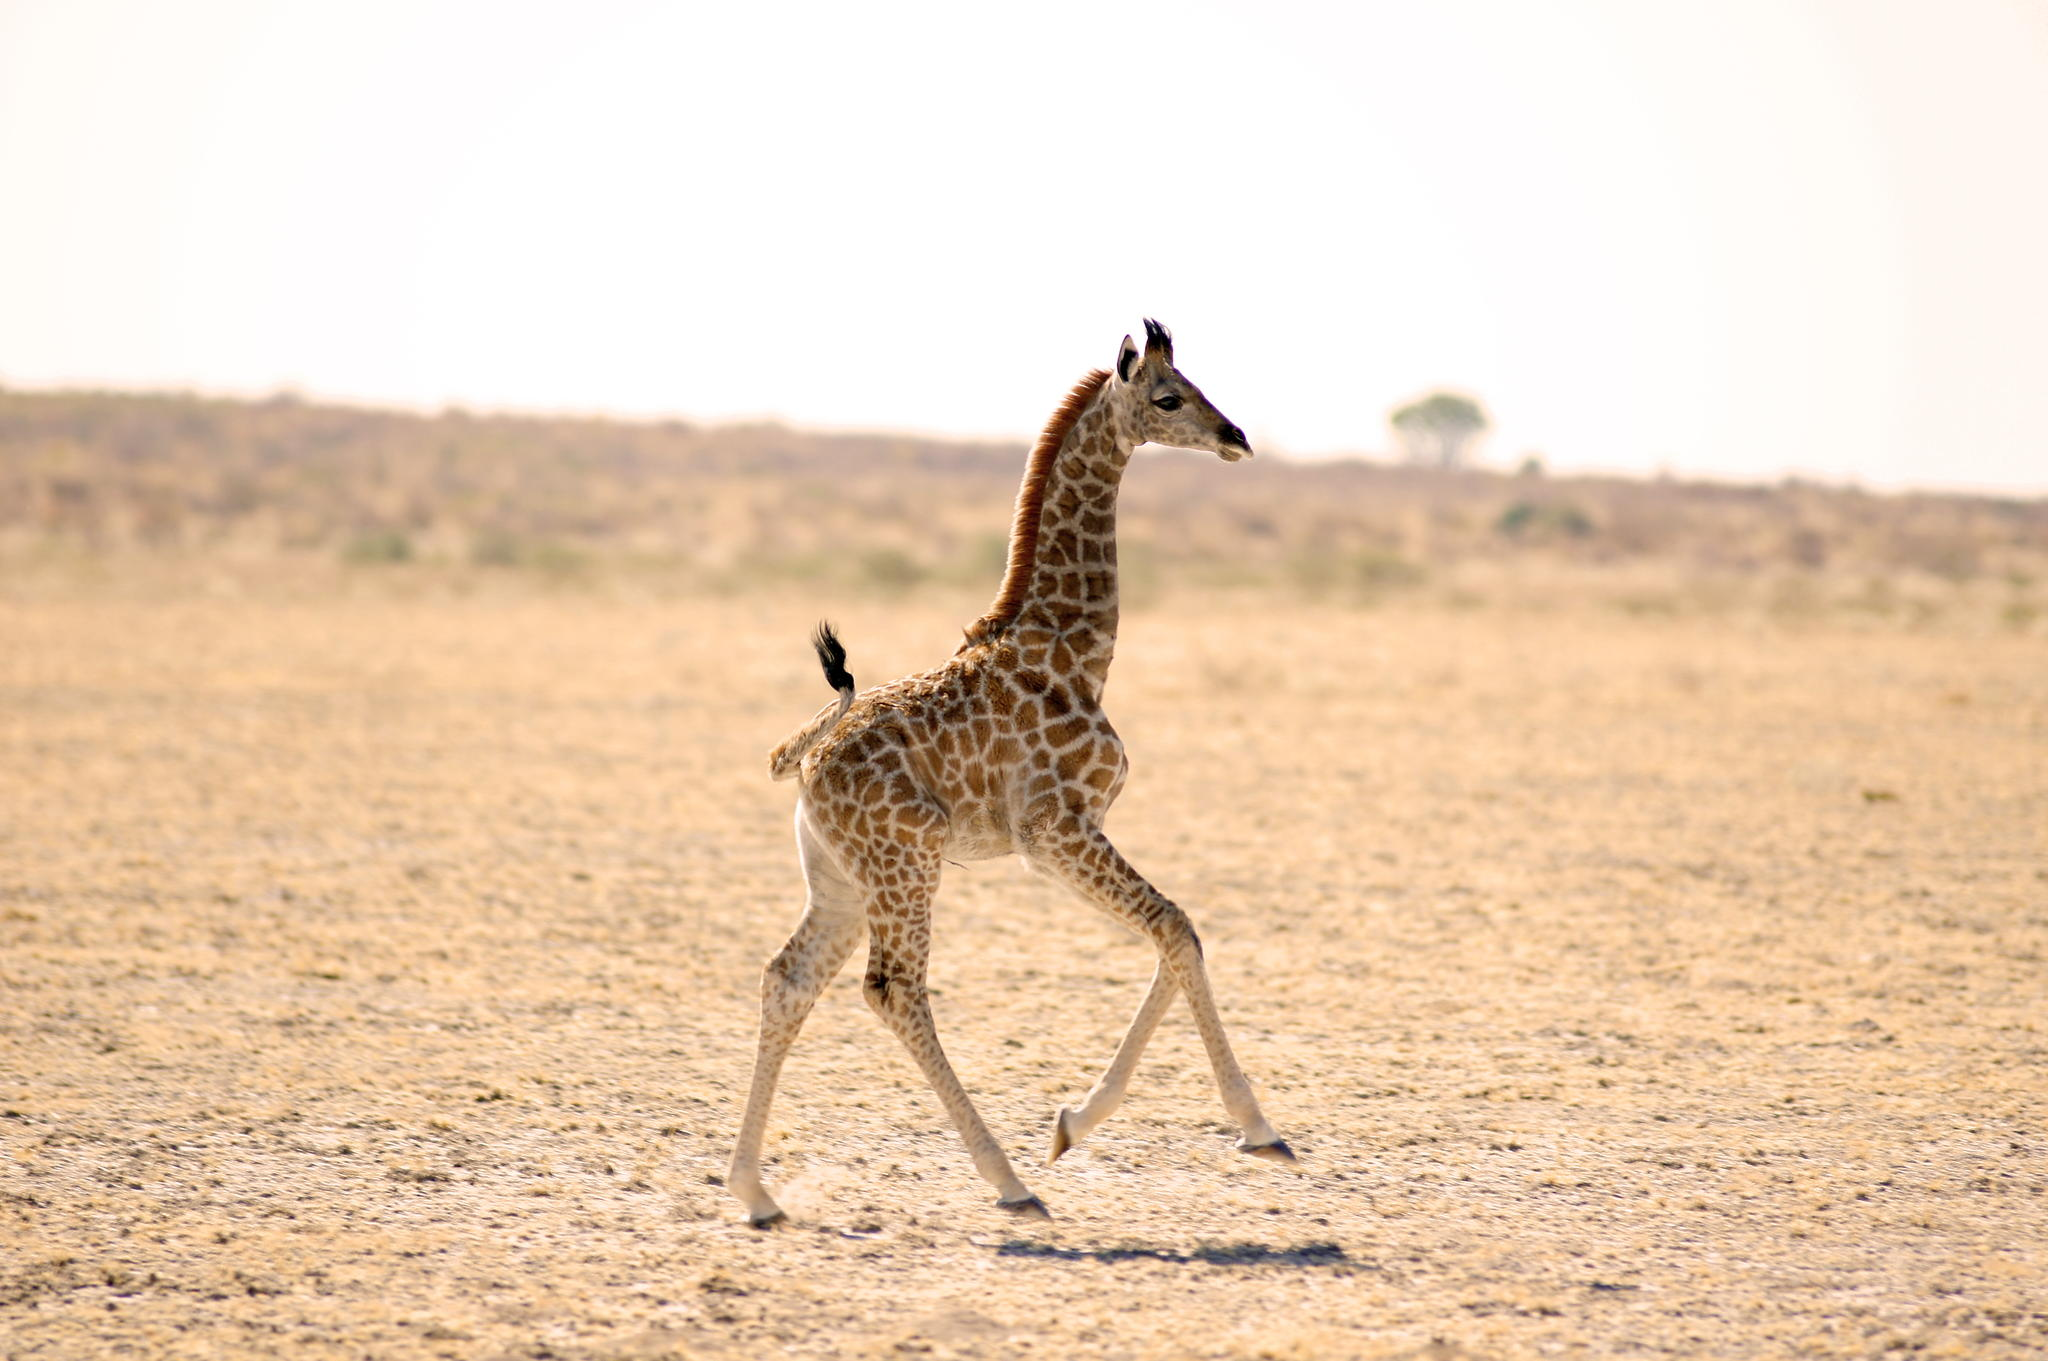 25 Photos Of Cute Baby Giraffes That Will Make Your Day Better